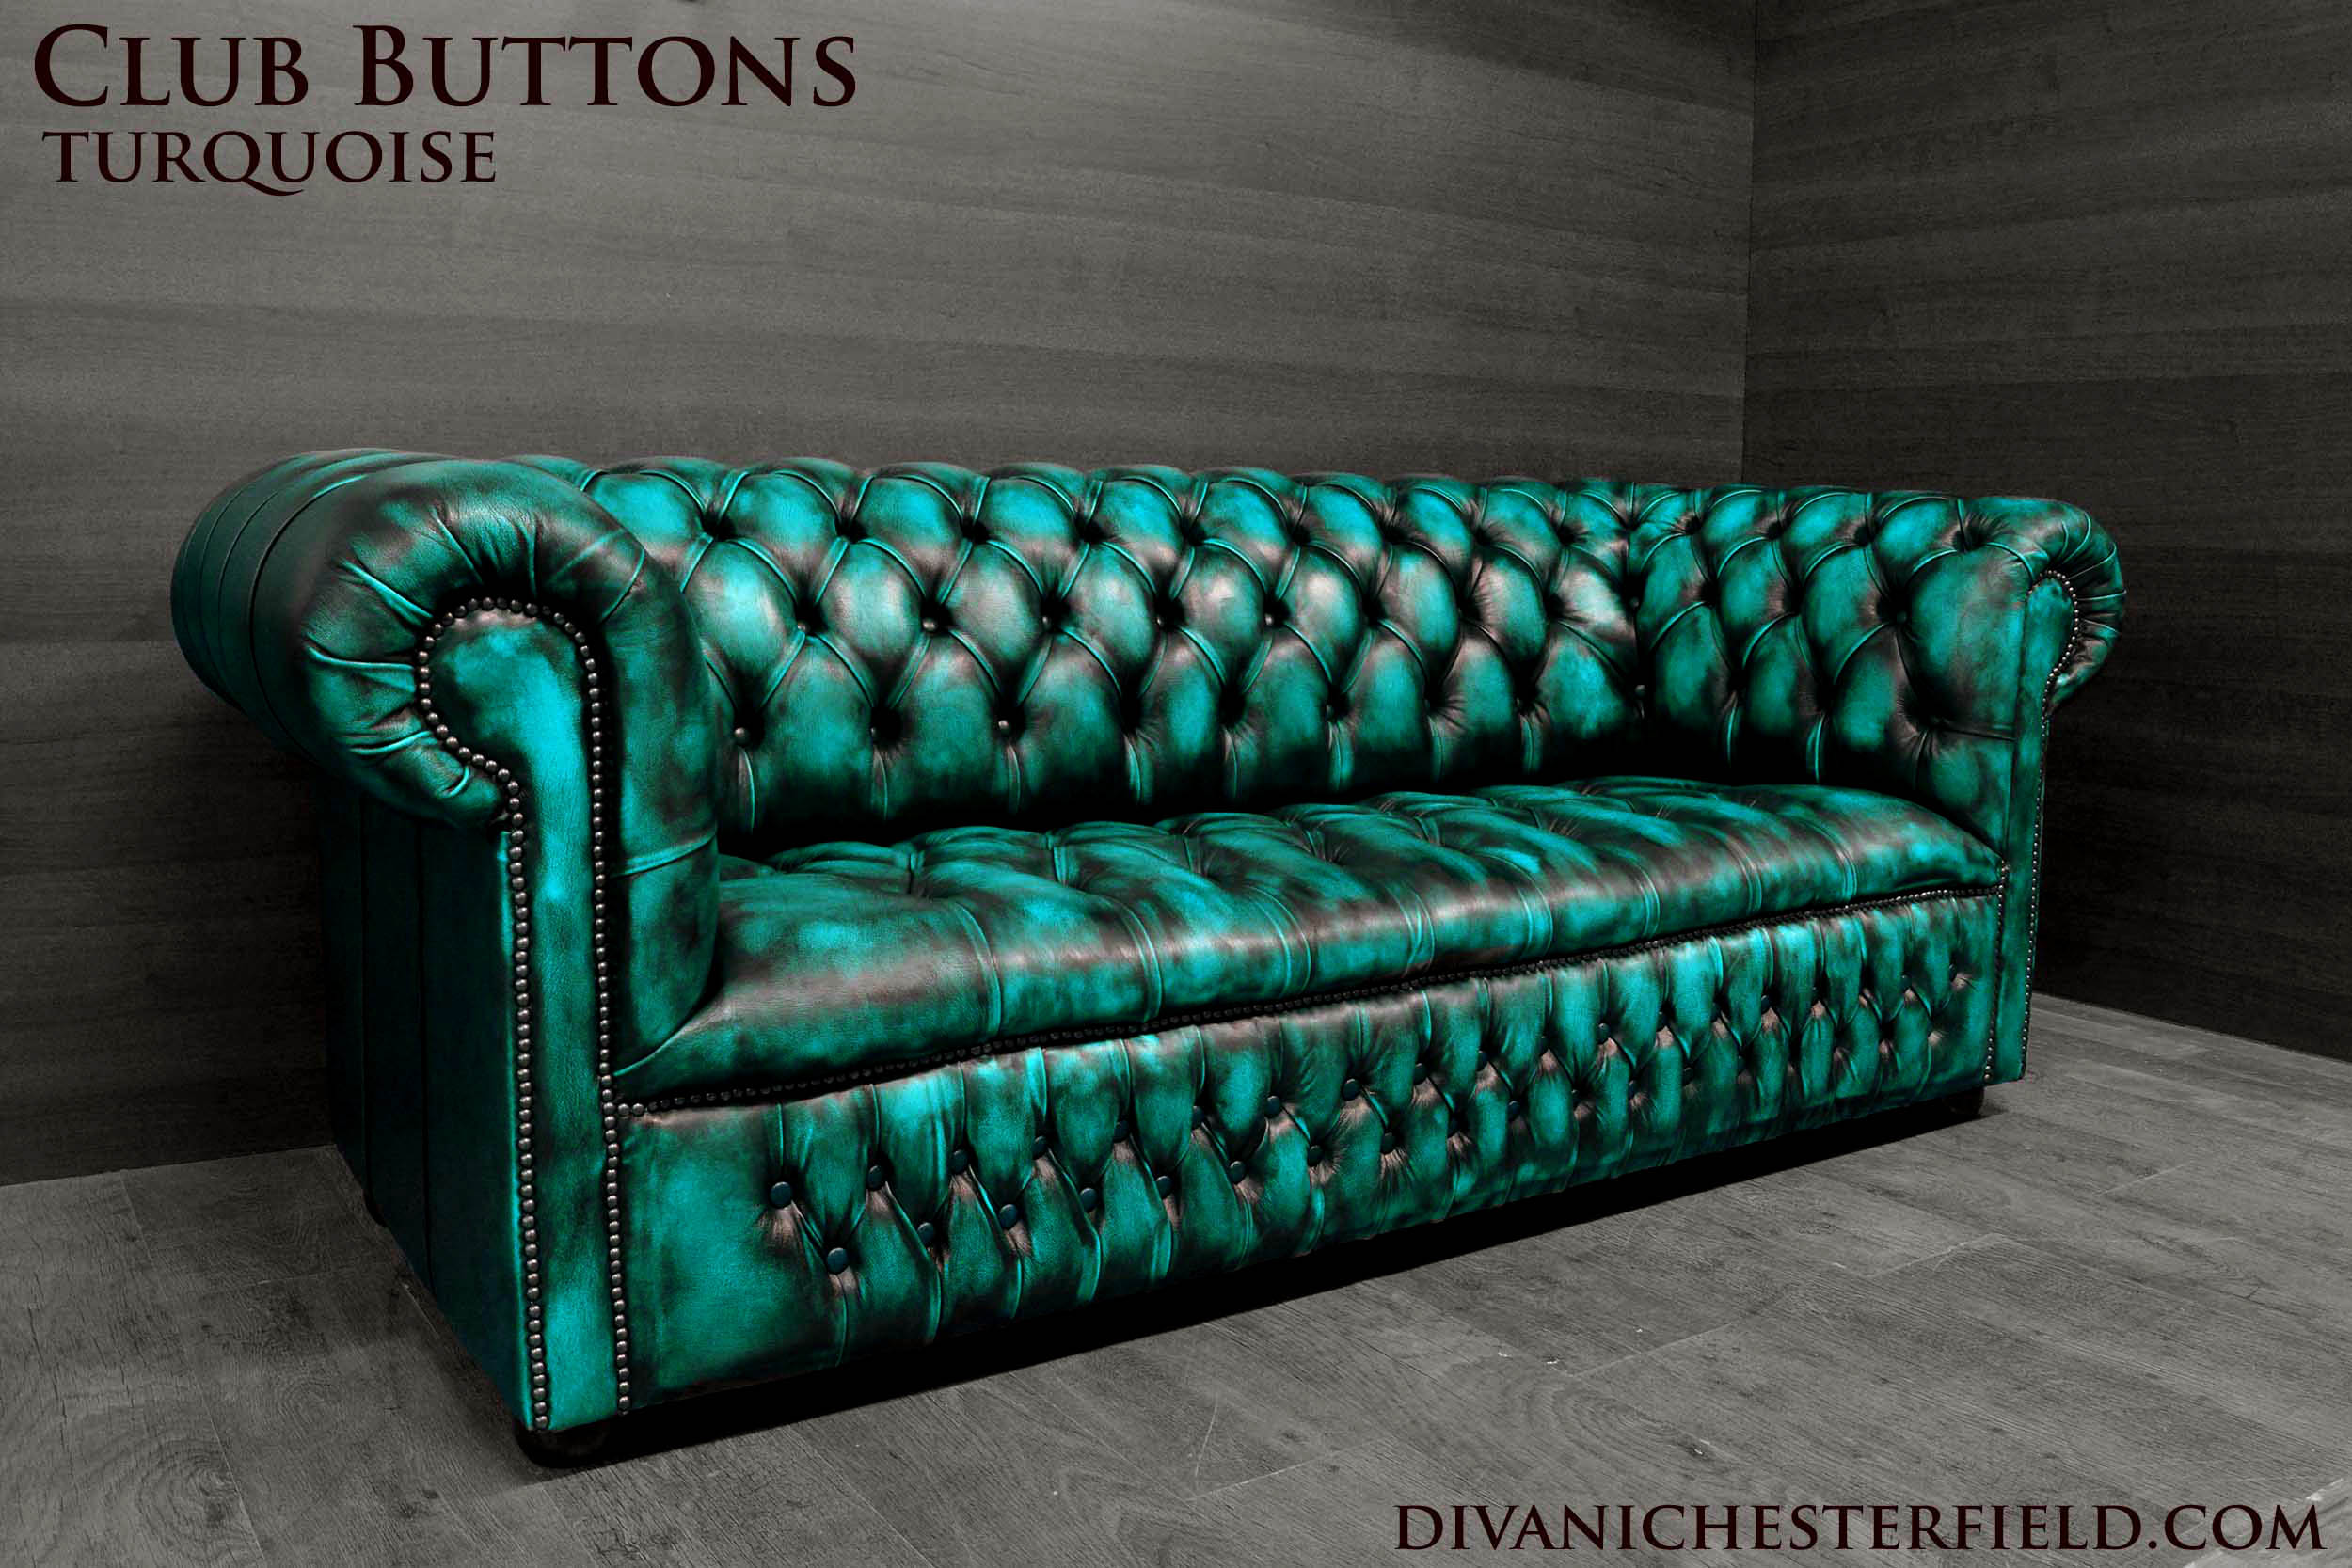 modern chesterfield sofa new leathers yellow turquoise. Black Bedroom Furniture Sets. Home Design Ideas